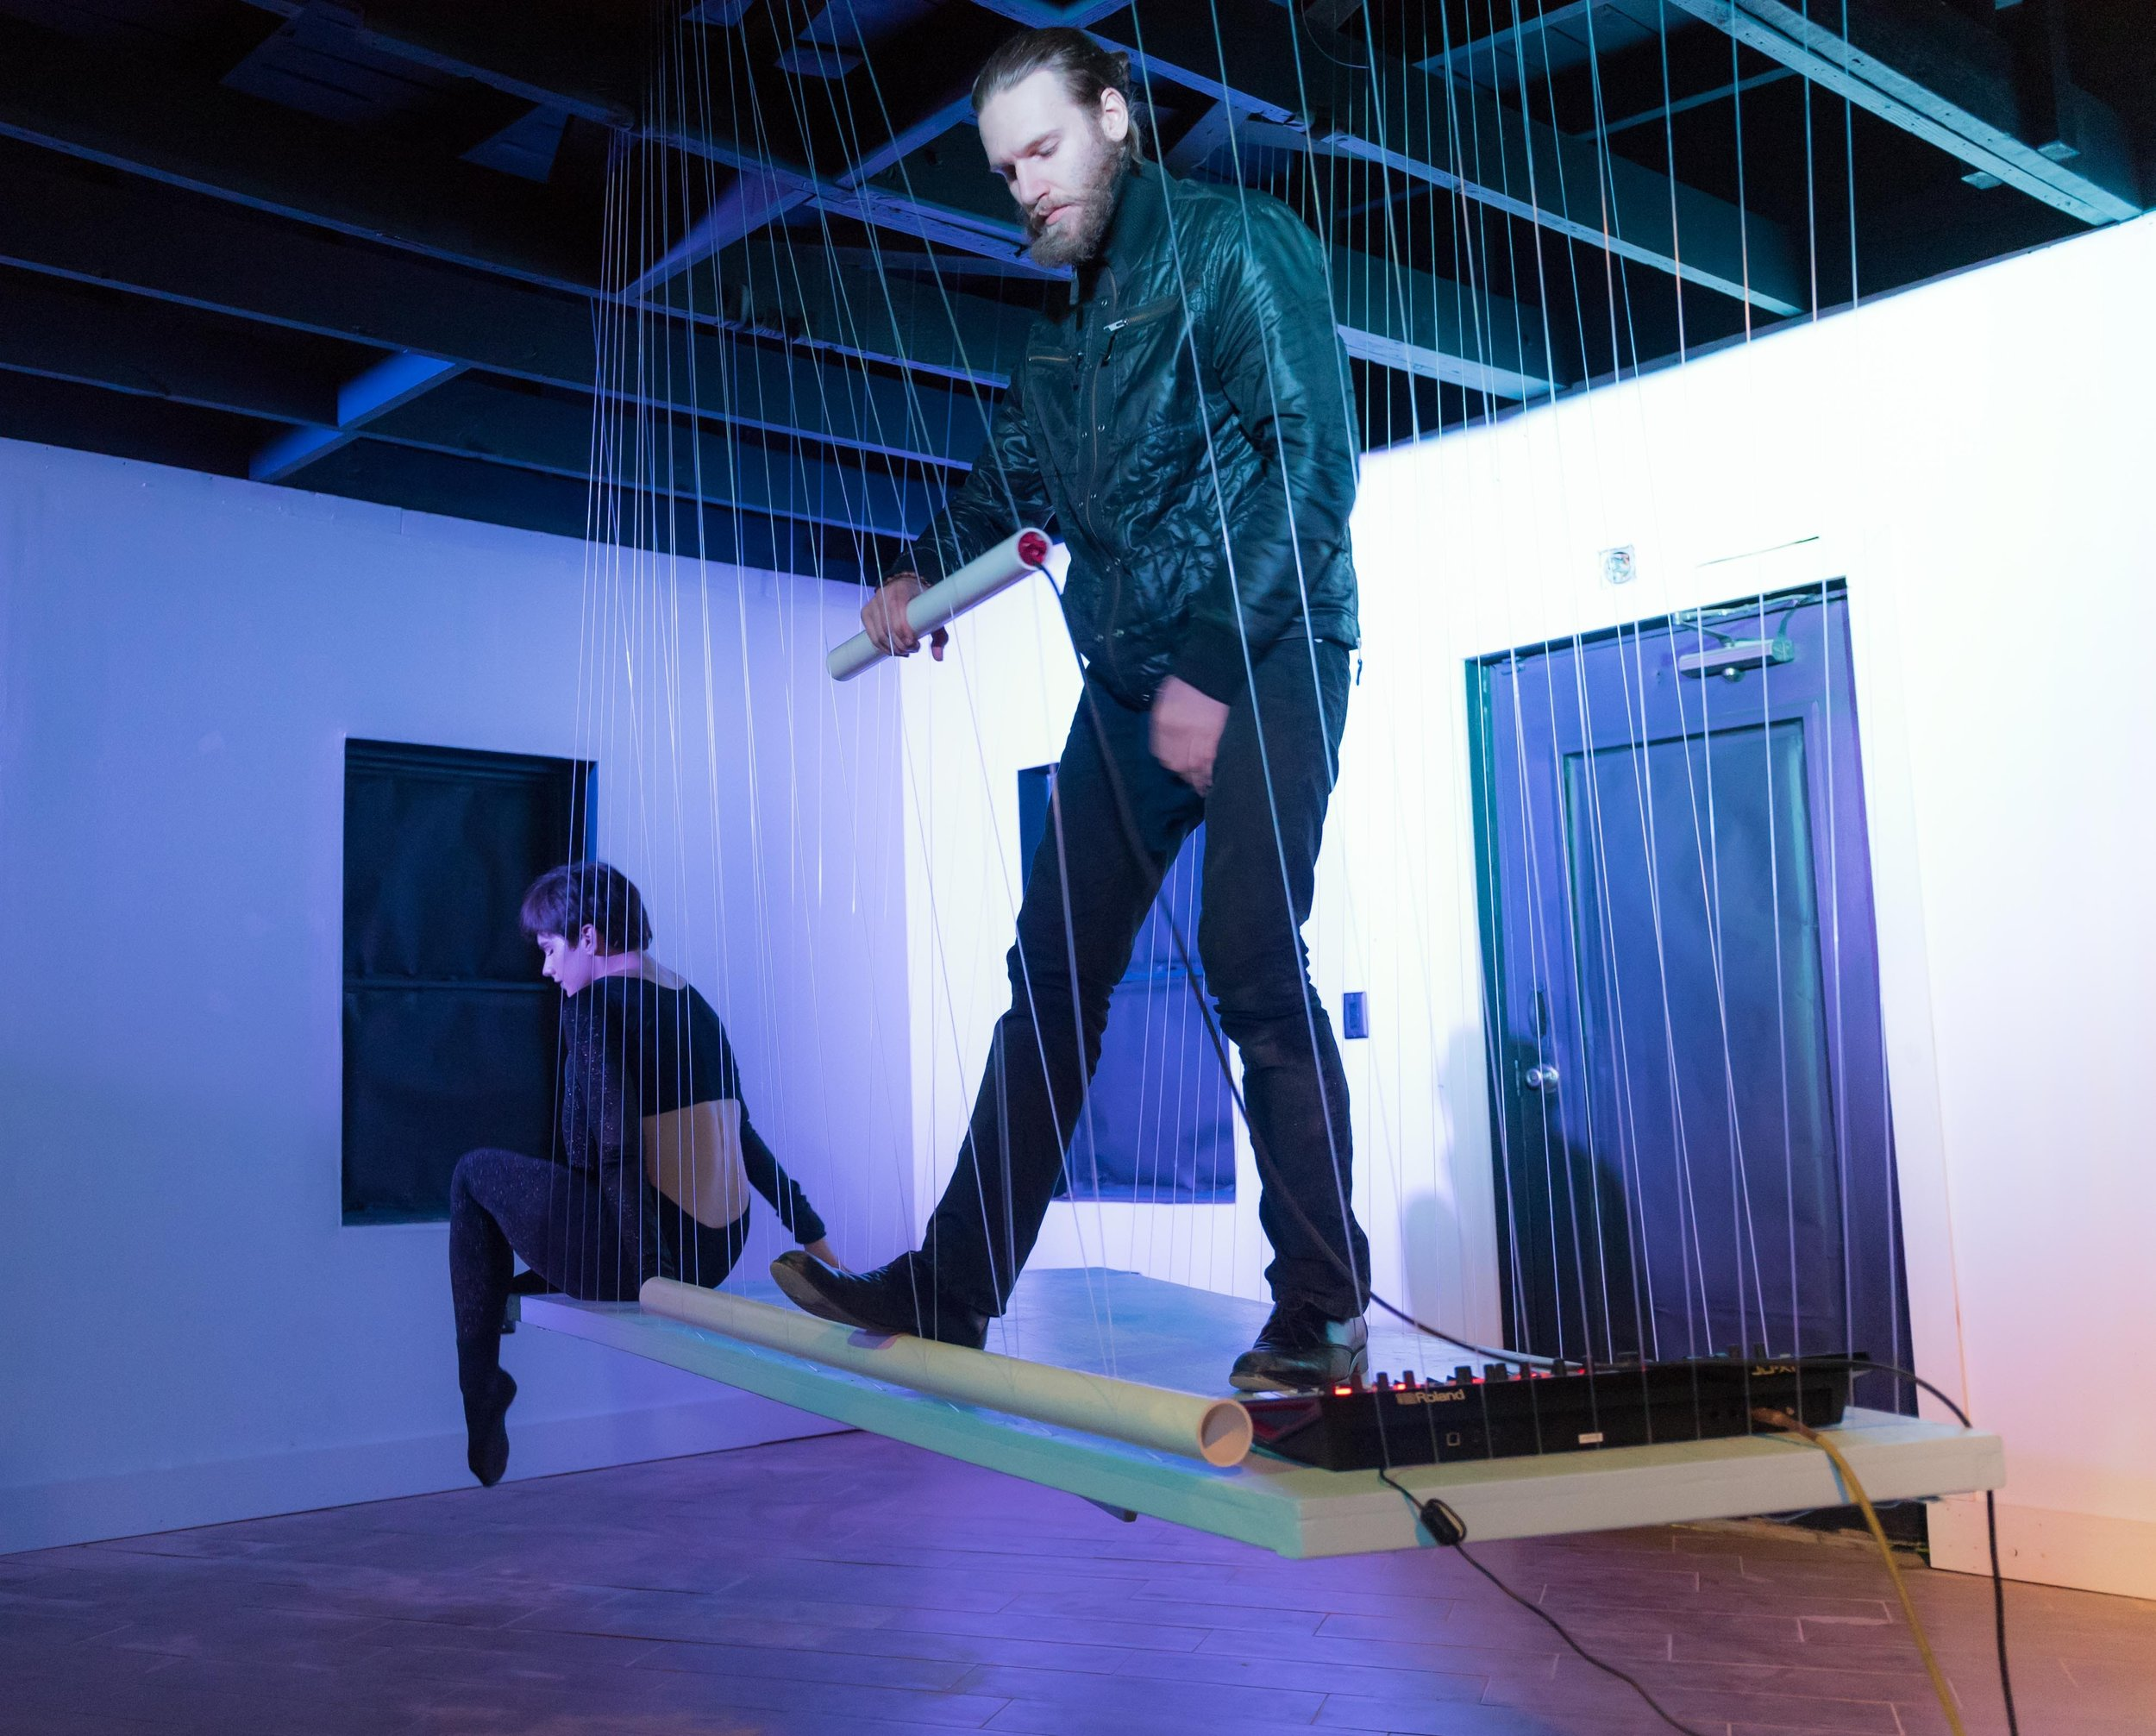 Prism2 - Floating platform suspended by harp string. Lights, performance live sound in vacant structure.